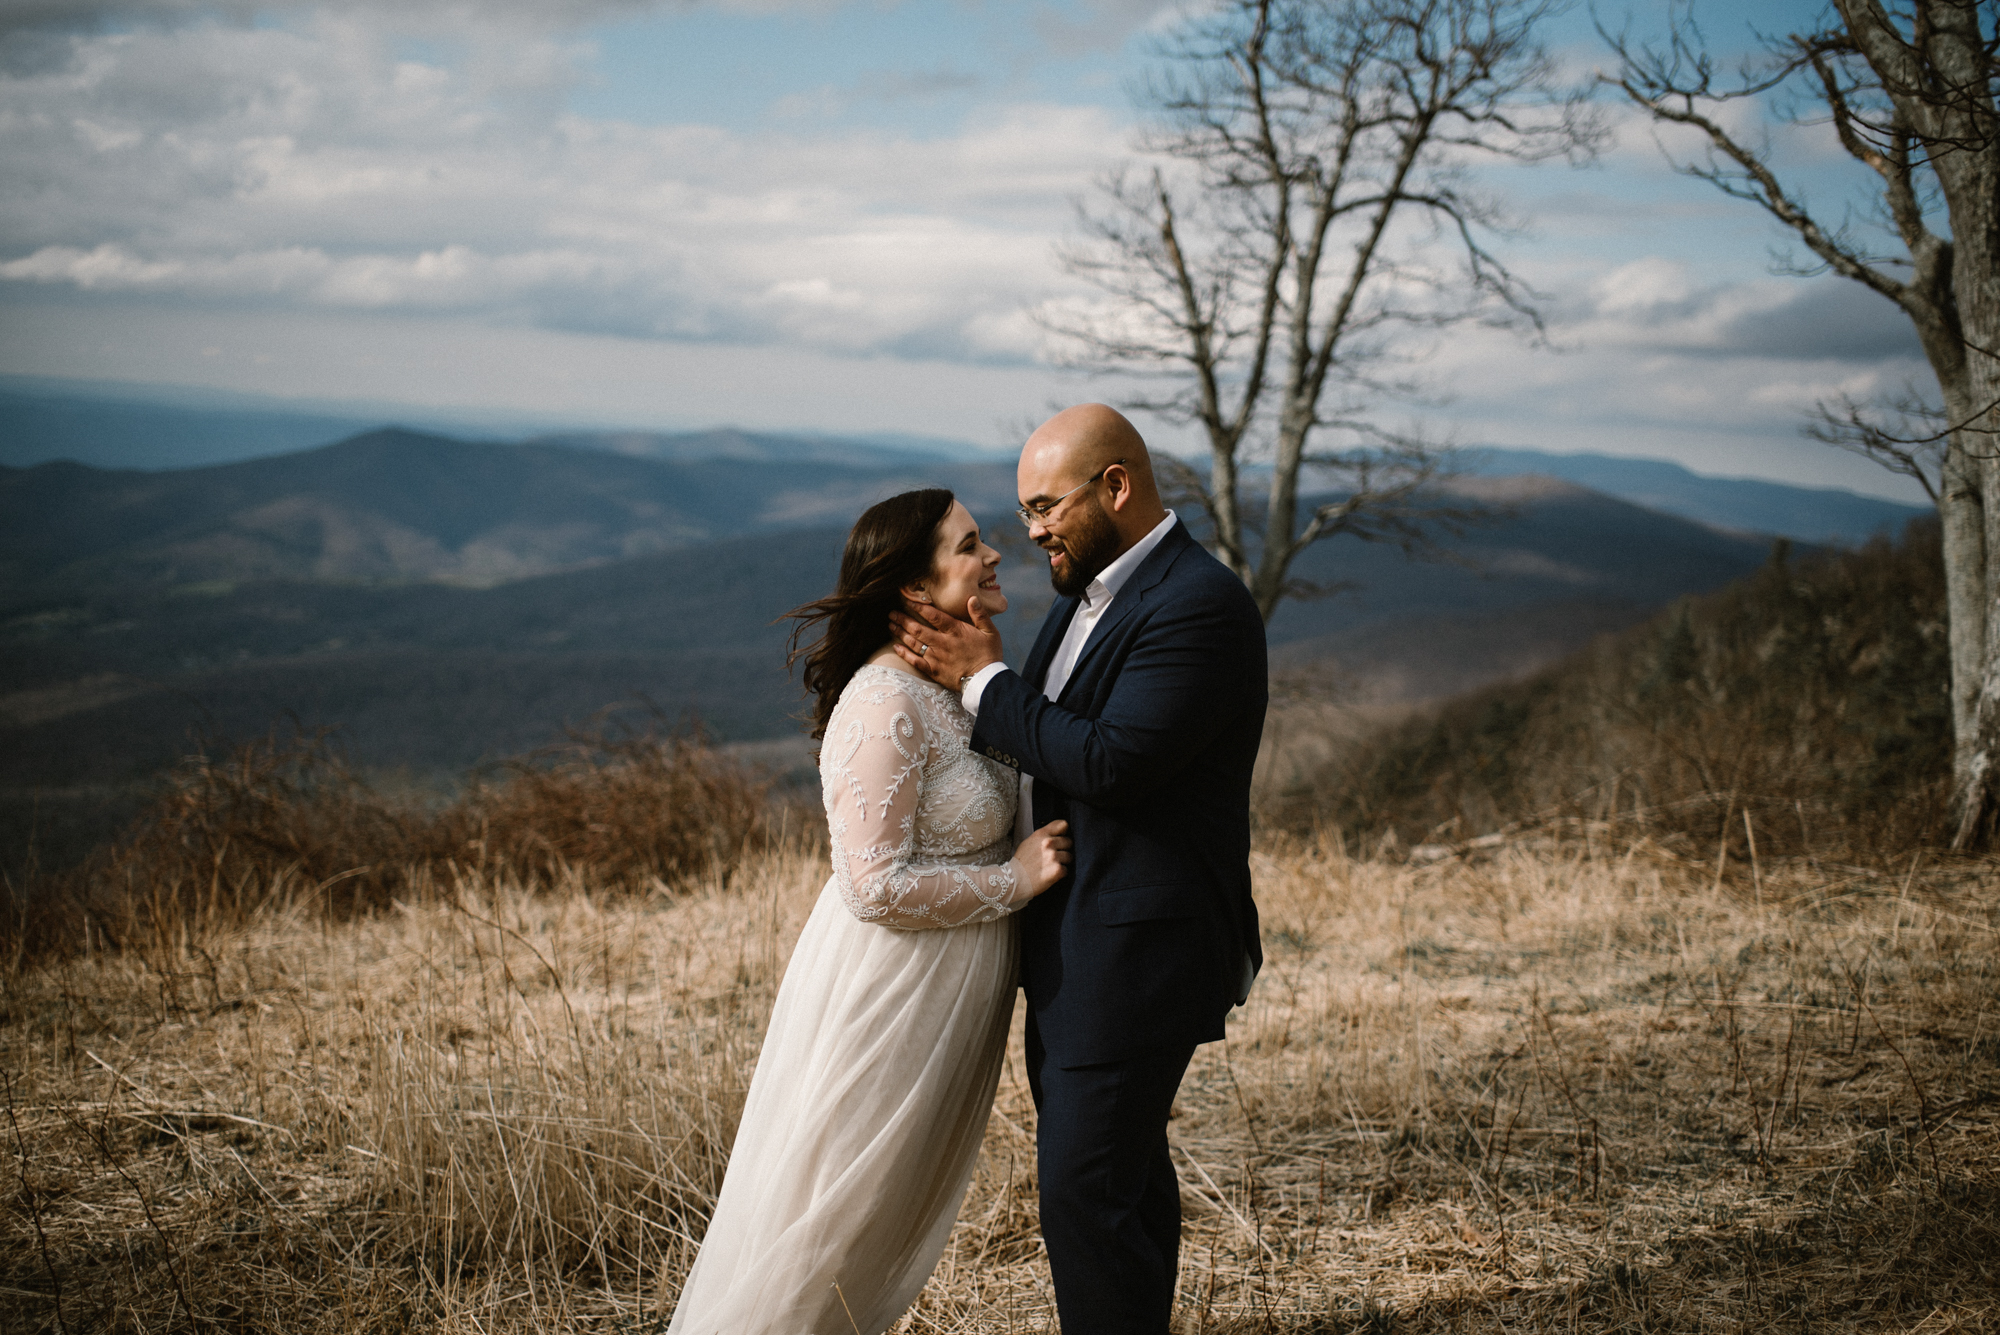 Emma and Jeddah - Intimate Luray Wedding - Shenandoah National Park Wedding - Adventure Elopement in Virginia - Shenandoah National Park Elopement_44.jpg